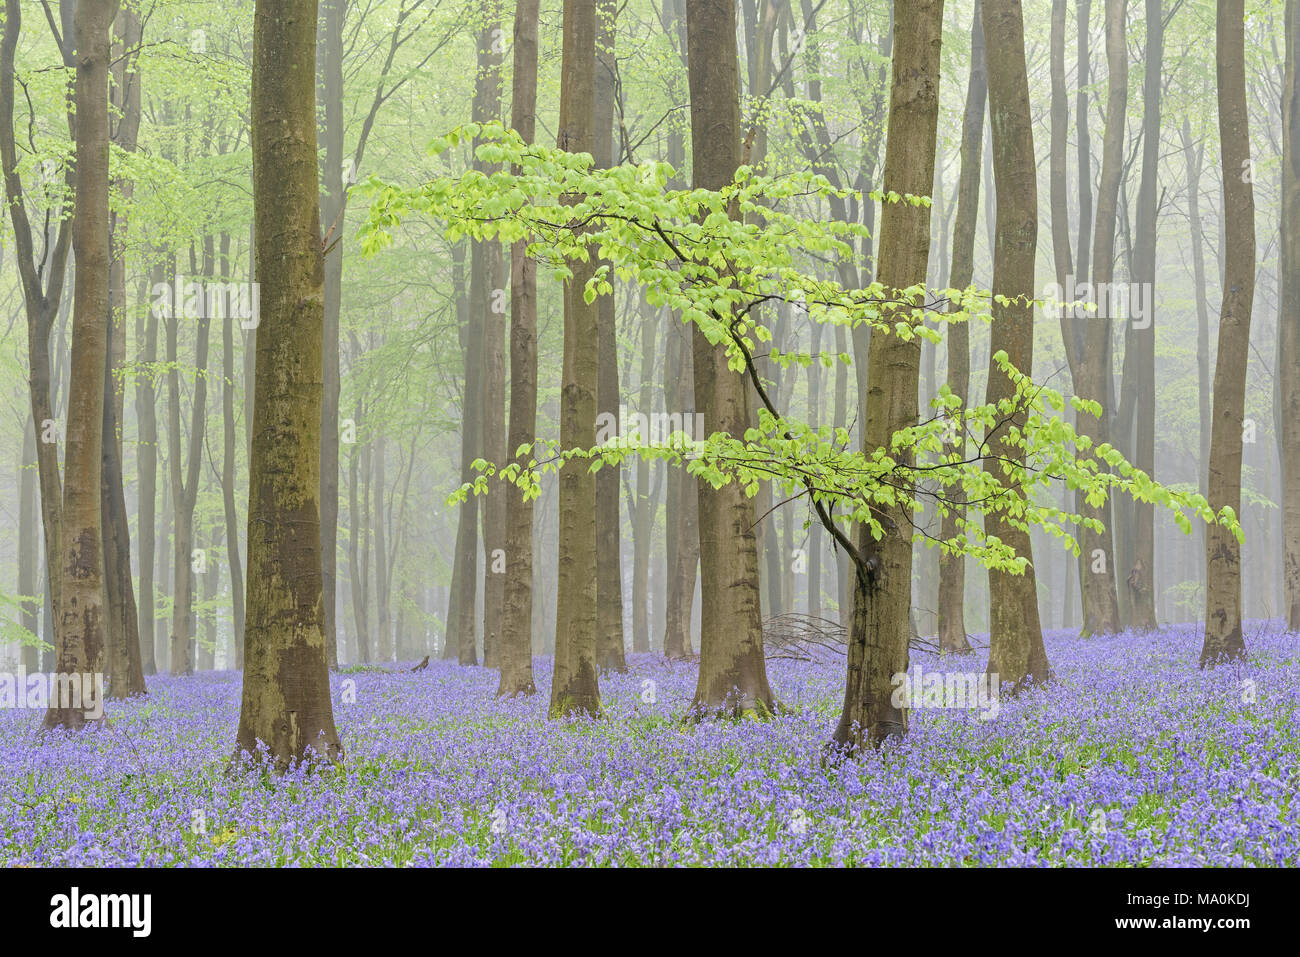 1st of May in a misty Bluebell filled Hampshire wood, the new green leaves on the low bough of a foreground Beech tree give the woodland a fresh feeli Stock Photo